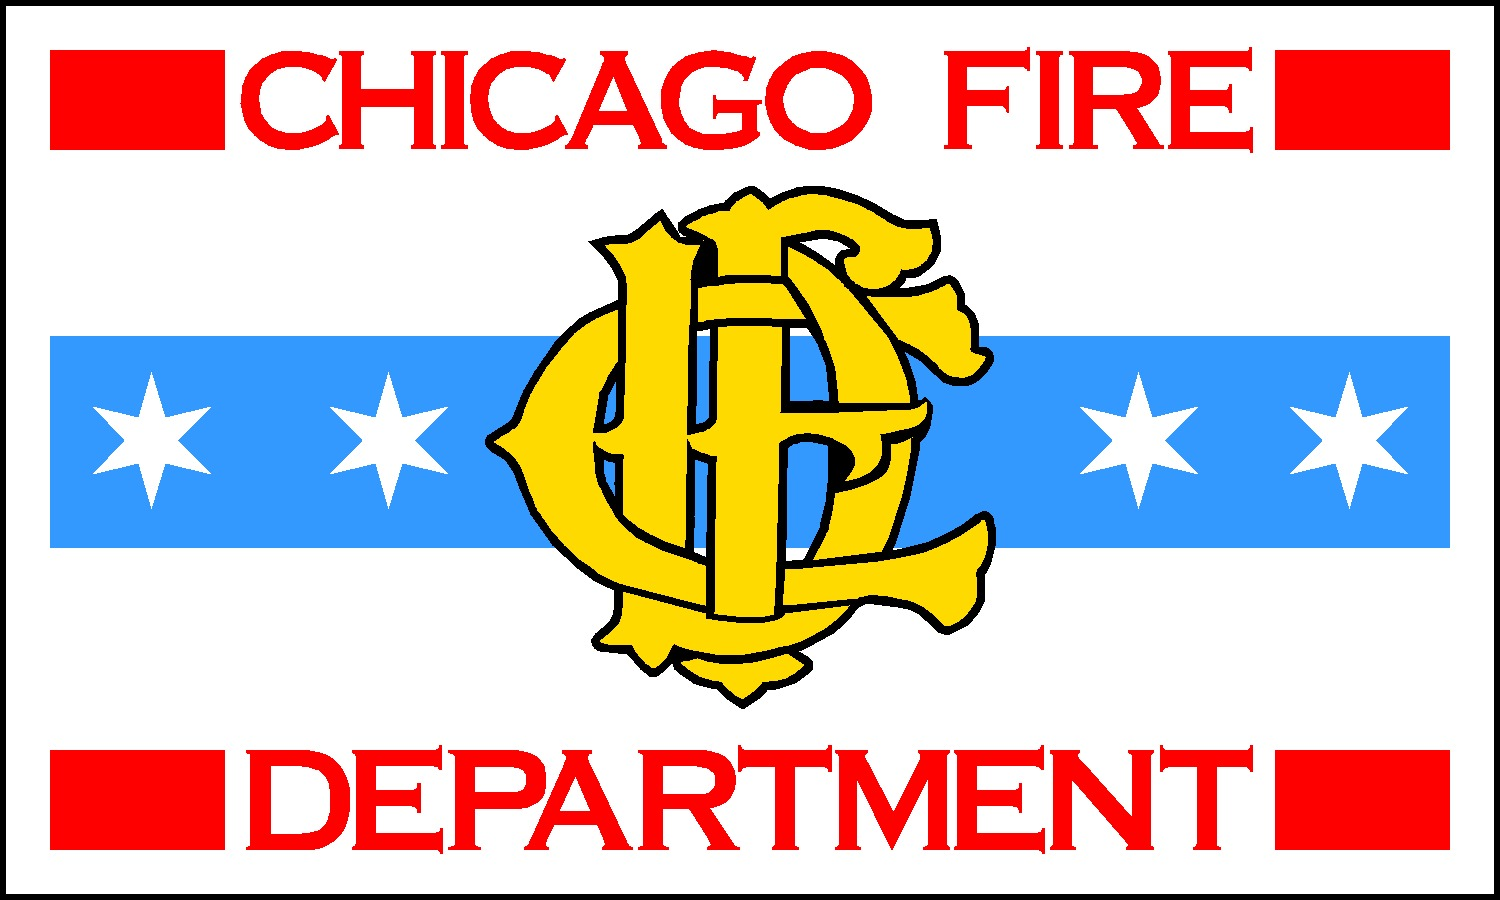 Wgn flag decorating co police fire flags chicago fire chicago fire department flag biocorpaavc Images